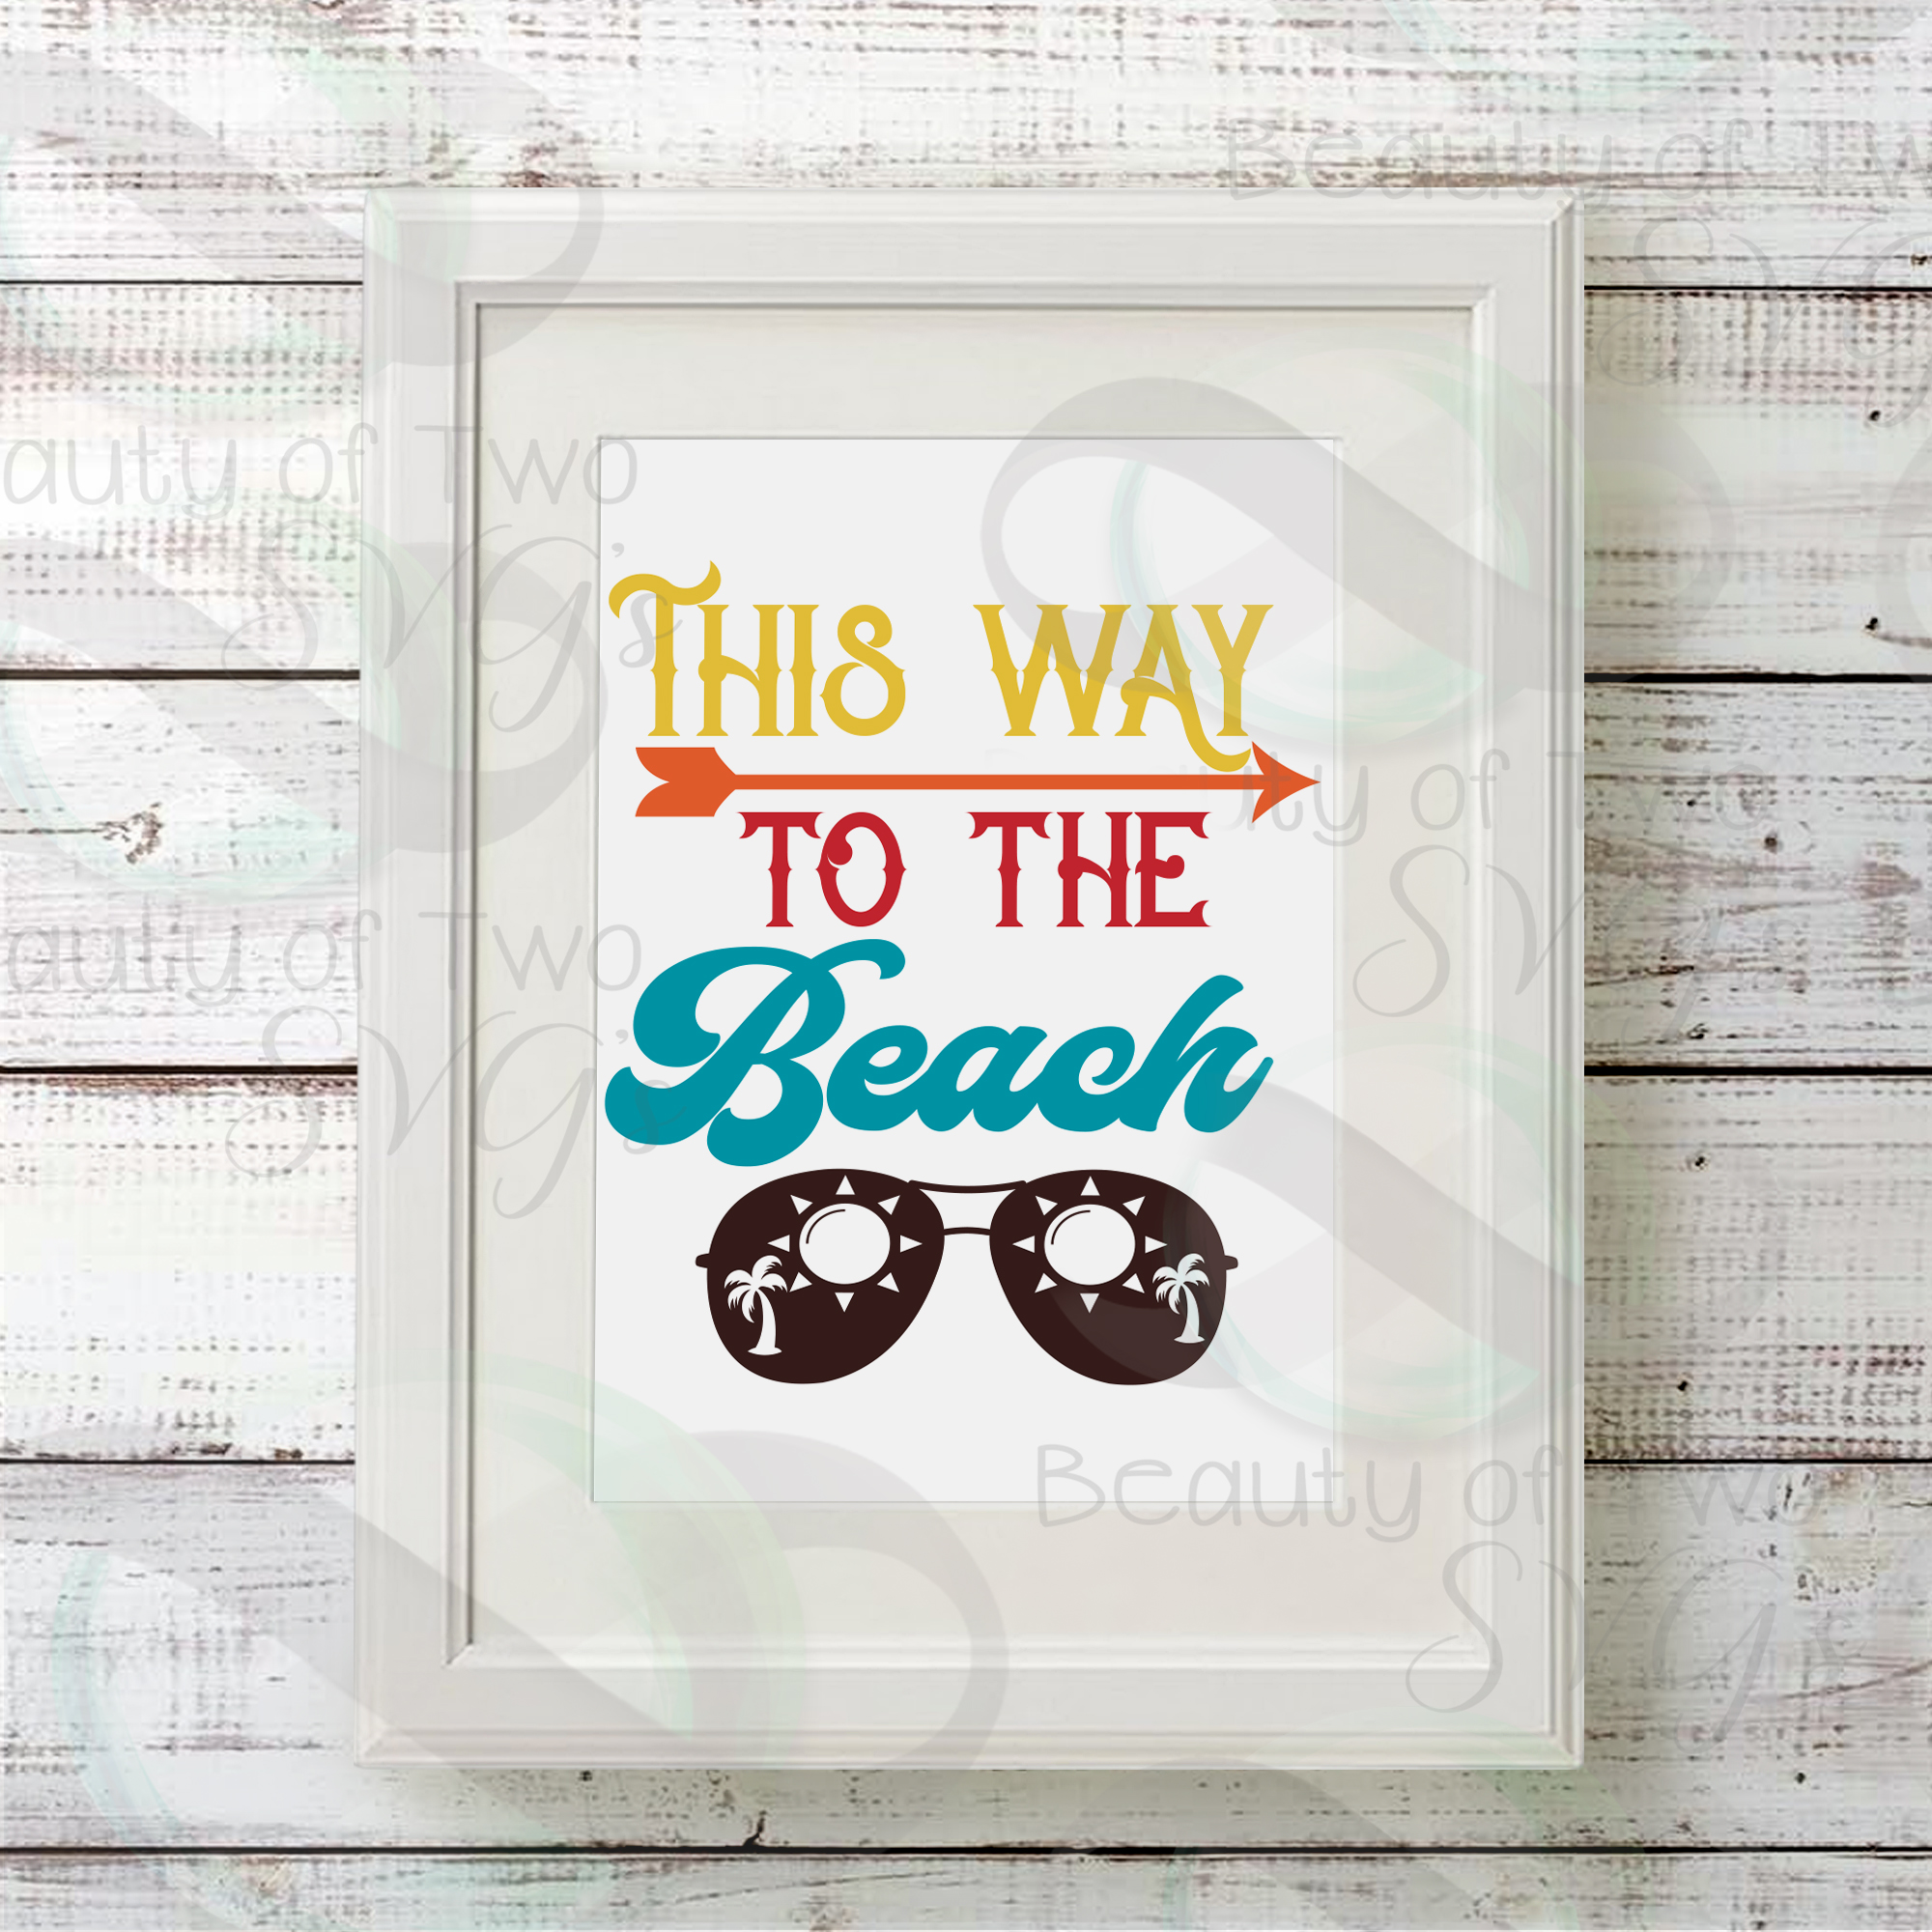 Sunglasses svg, This way to the beach svg and png, beach svg example image 2